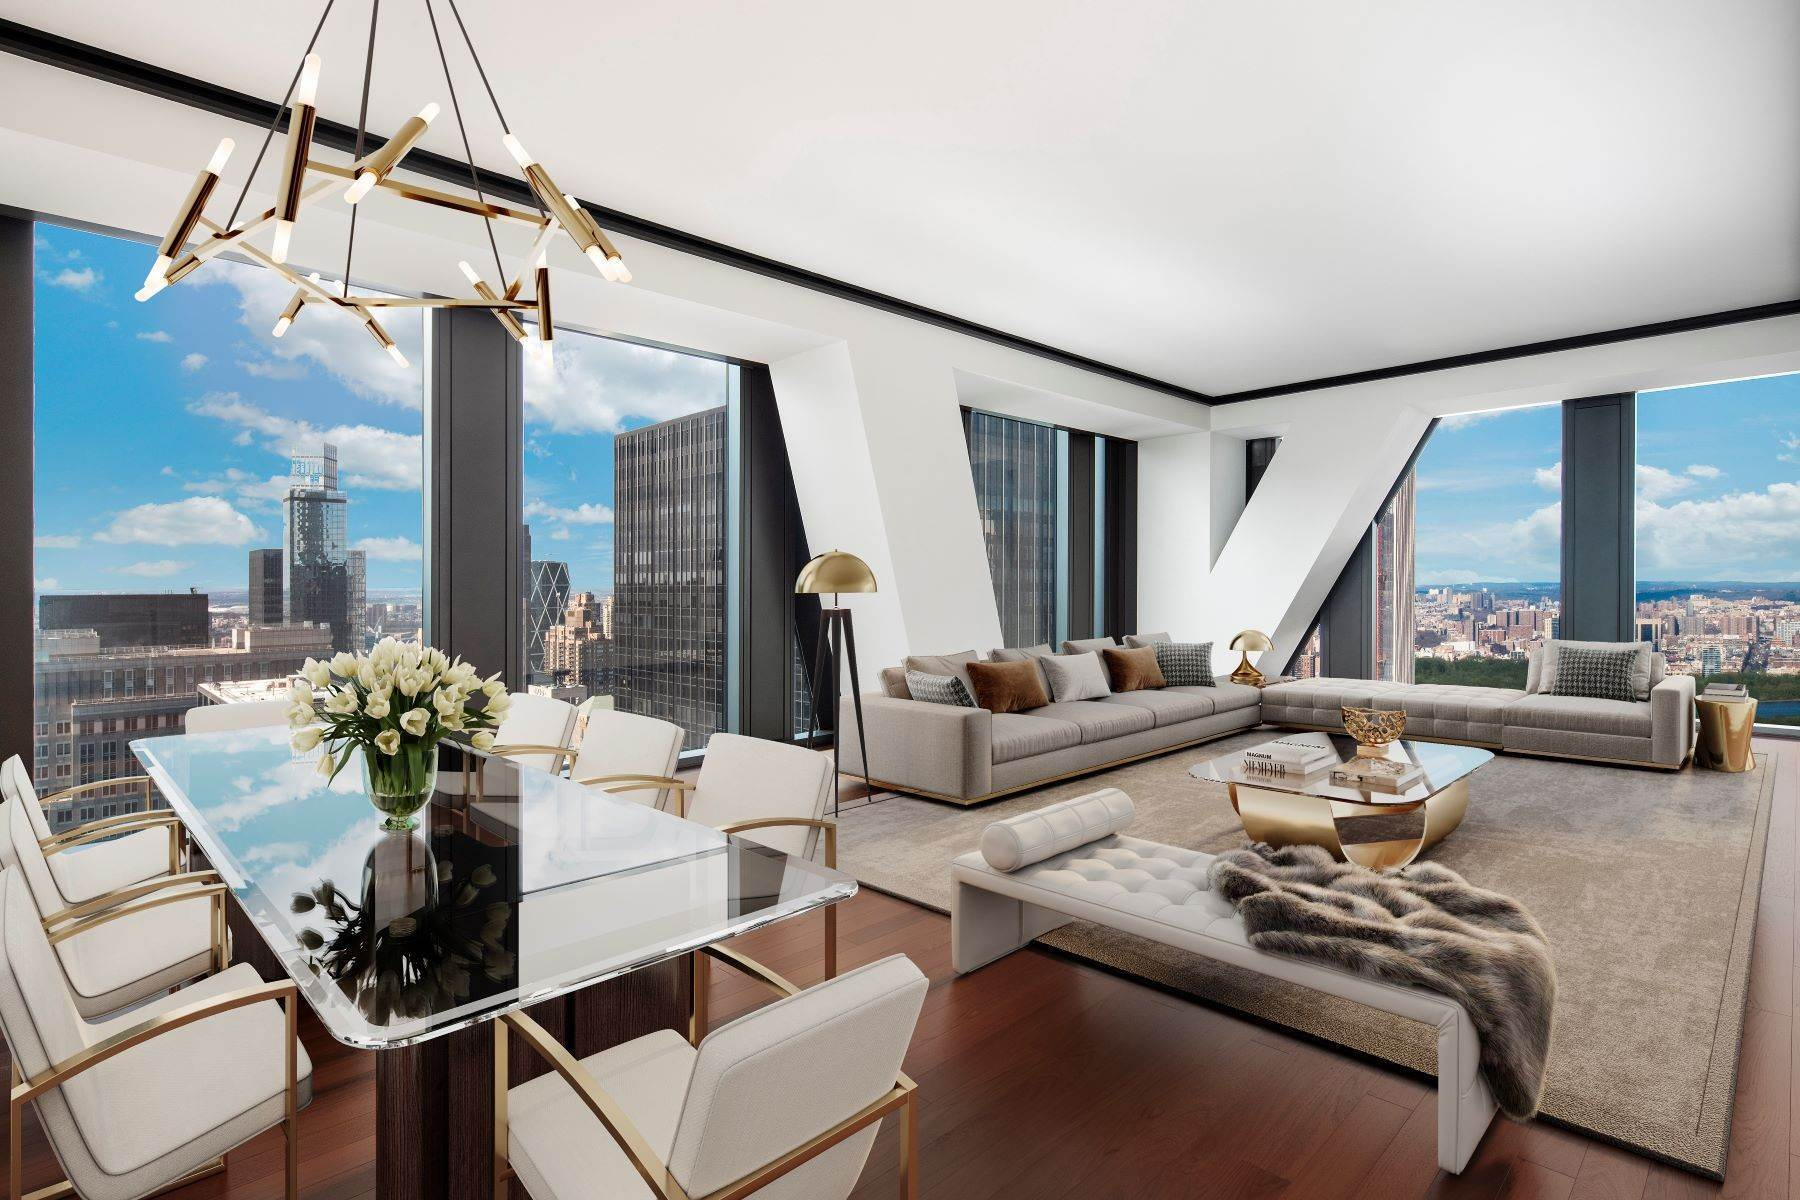 Condominiums om 53W53 - High above MOMA 3BR Park View 53 West 53rd Street, 53B, New York, New York 10019 Verenigde Staten